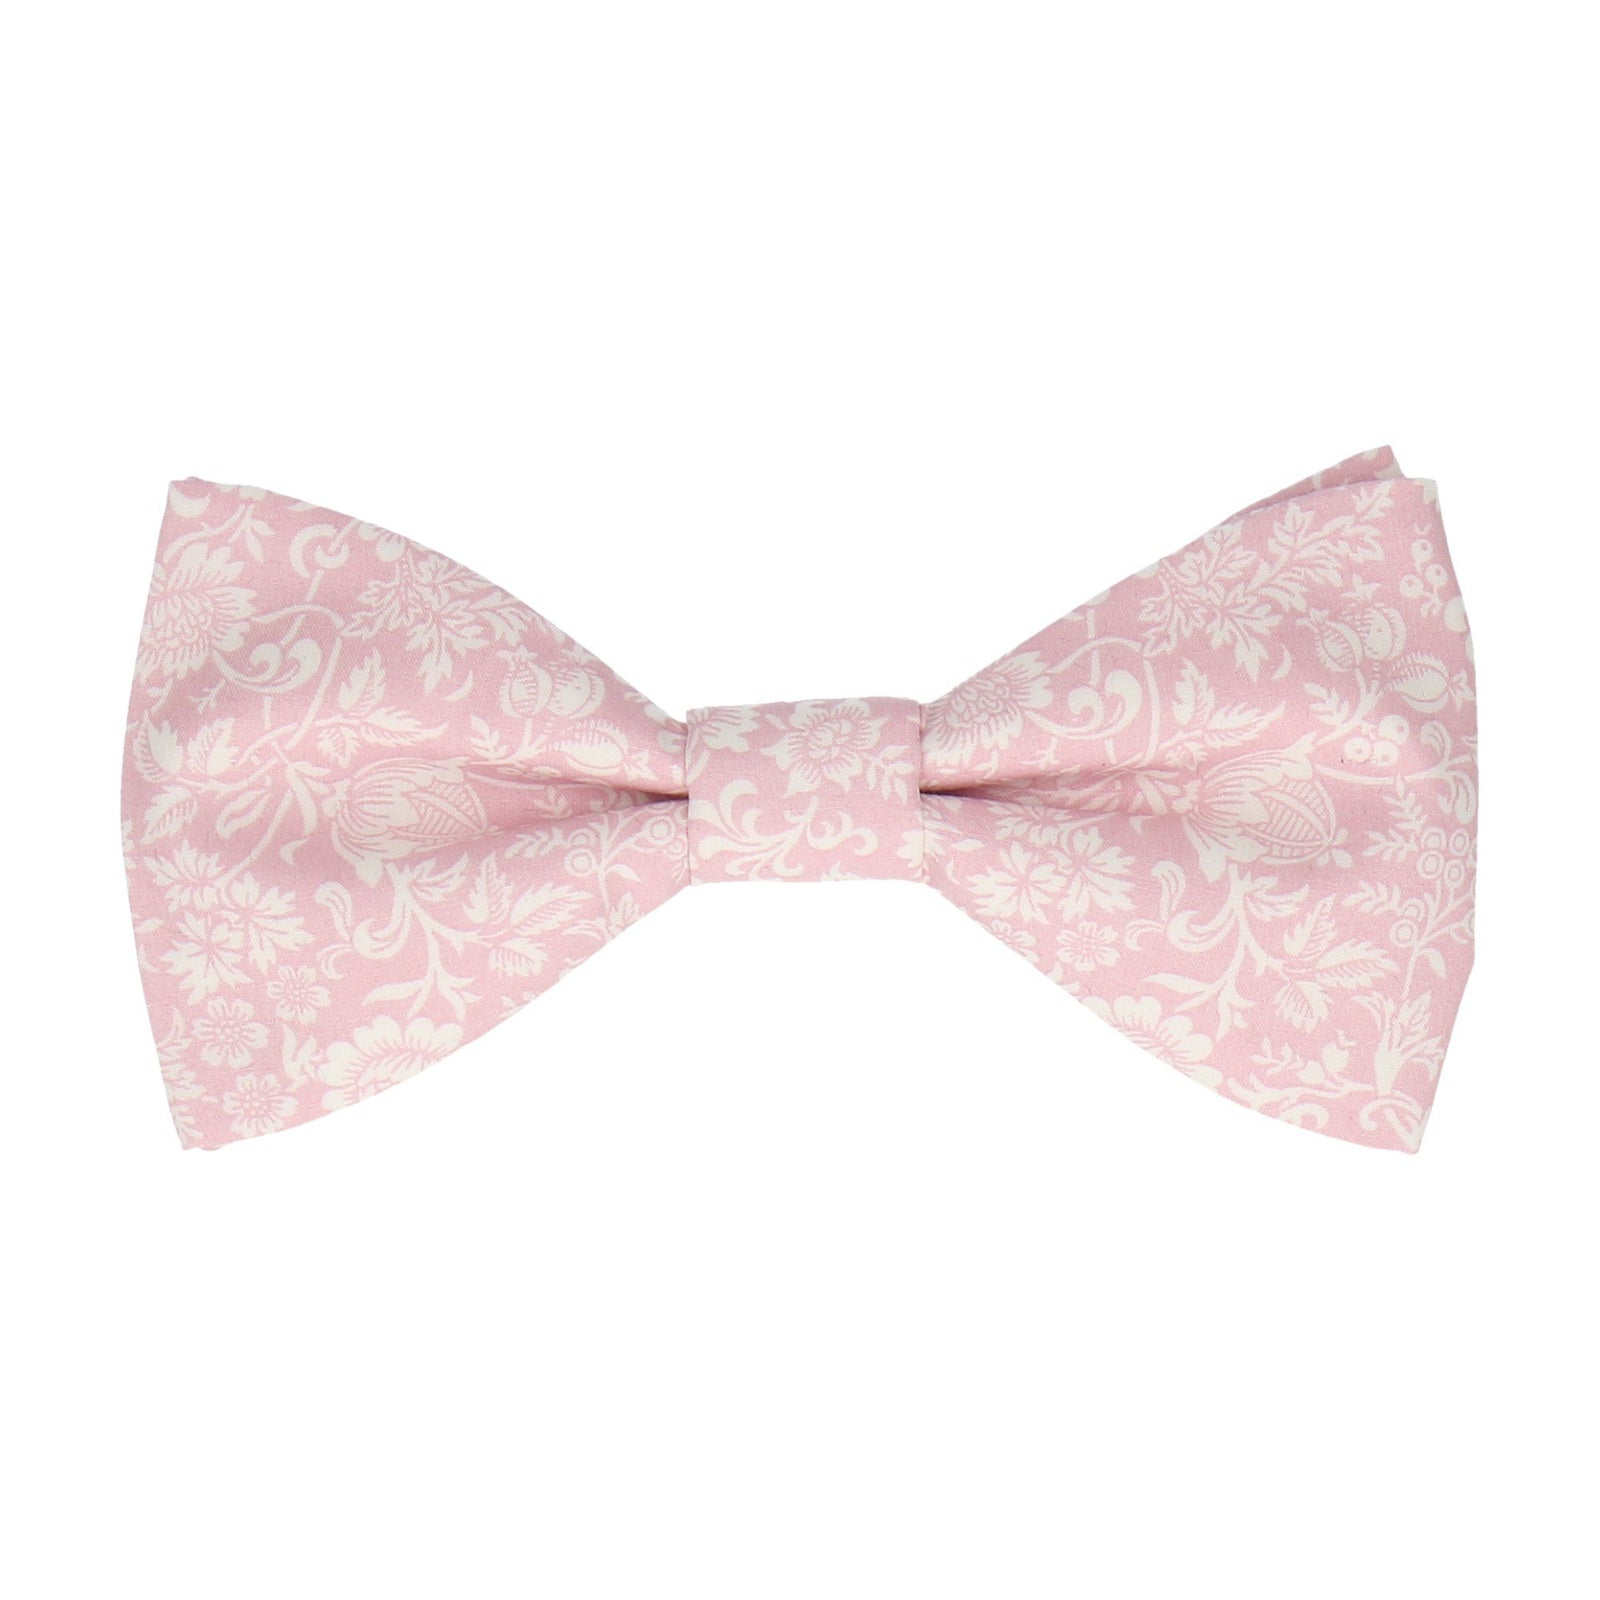 Soft Pink Kelmscott Liberty Cotton Bow Tie